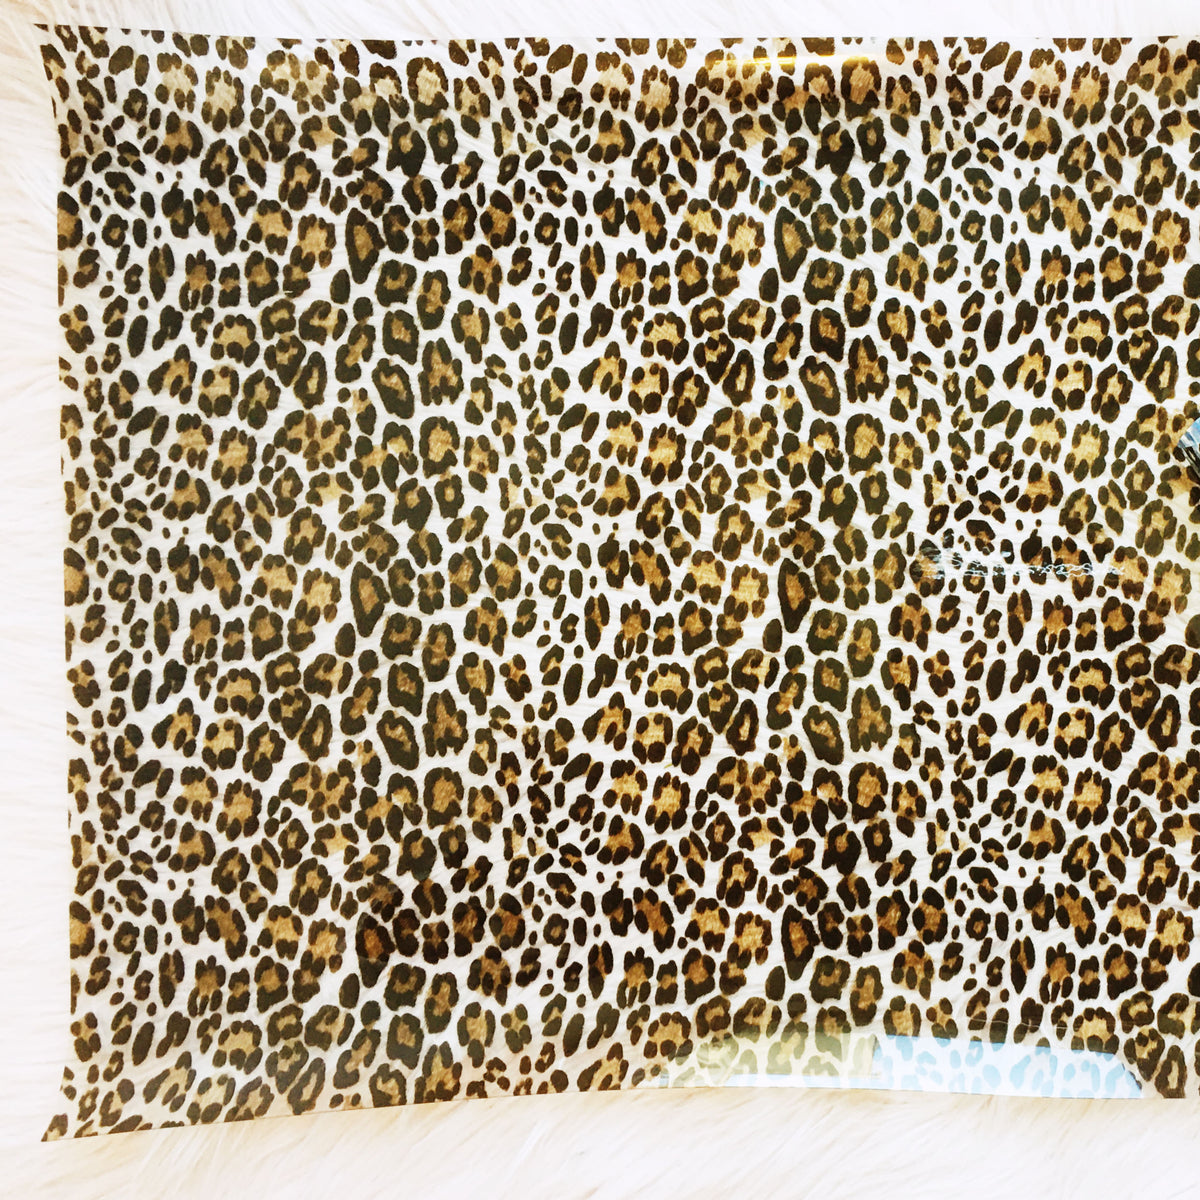 Leopard See Through Vinyl Sew Hungryhippie